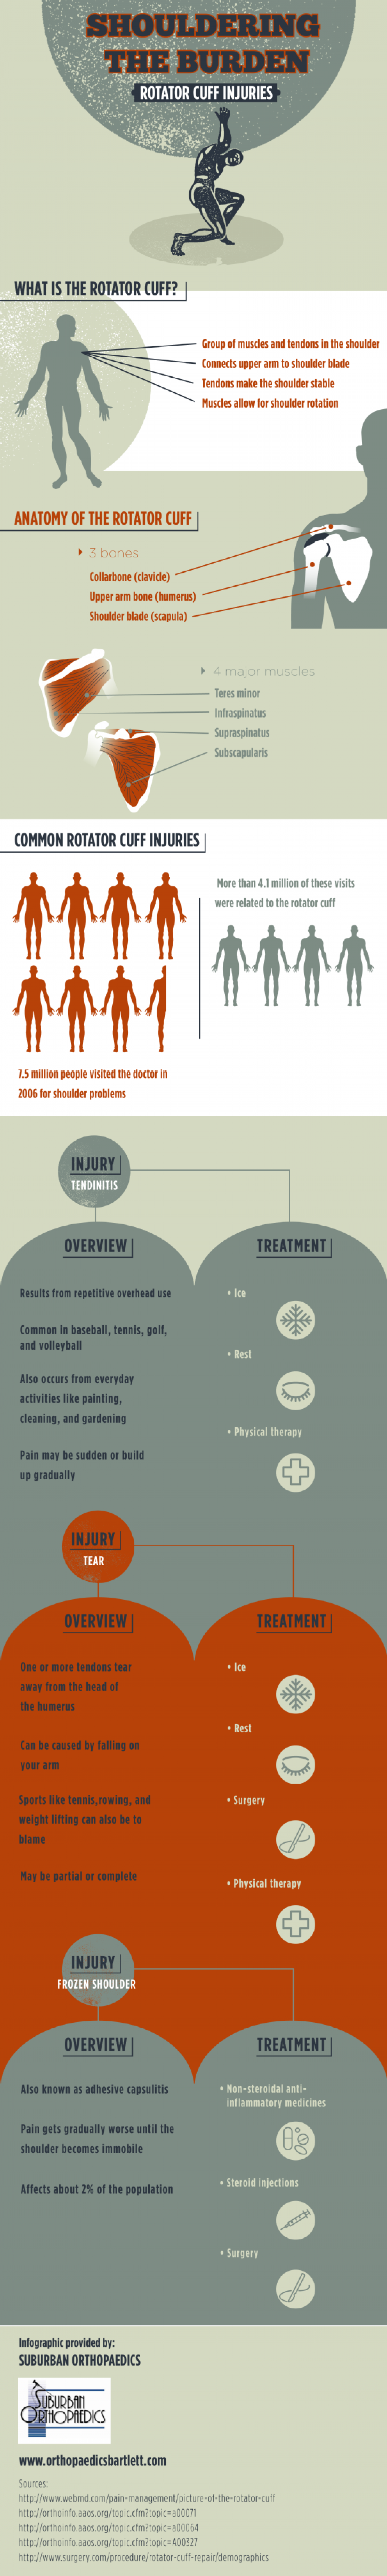 Shouldering the Burden: Rotator Cuff Injuries Infographic